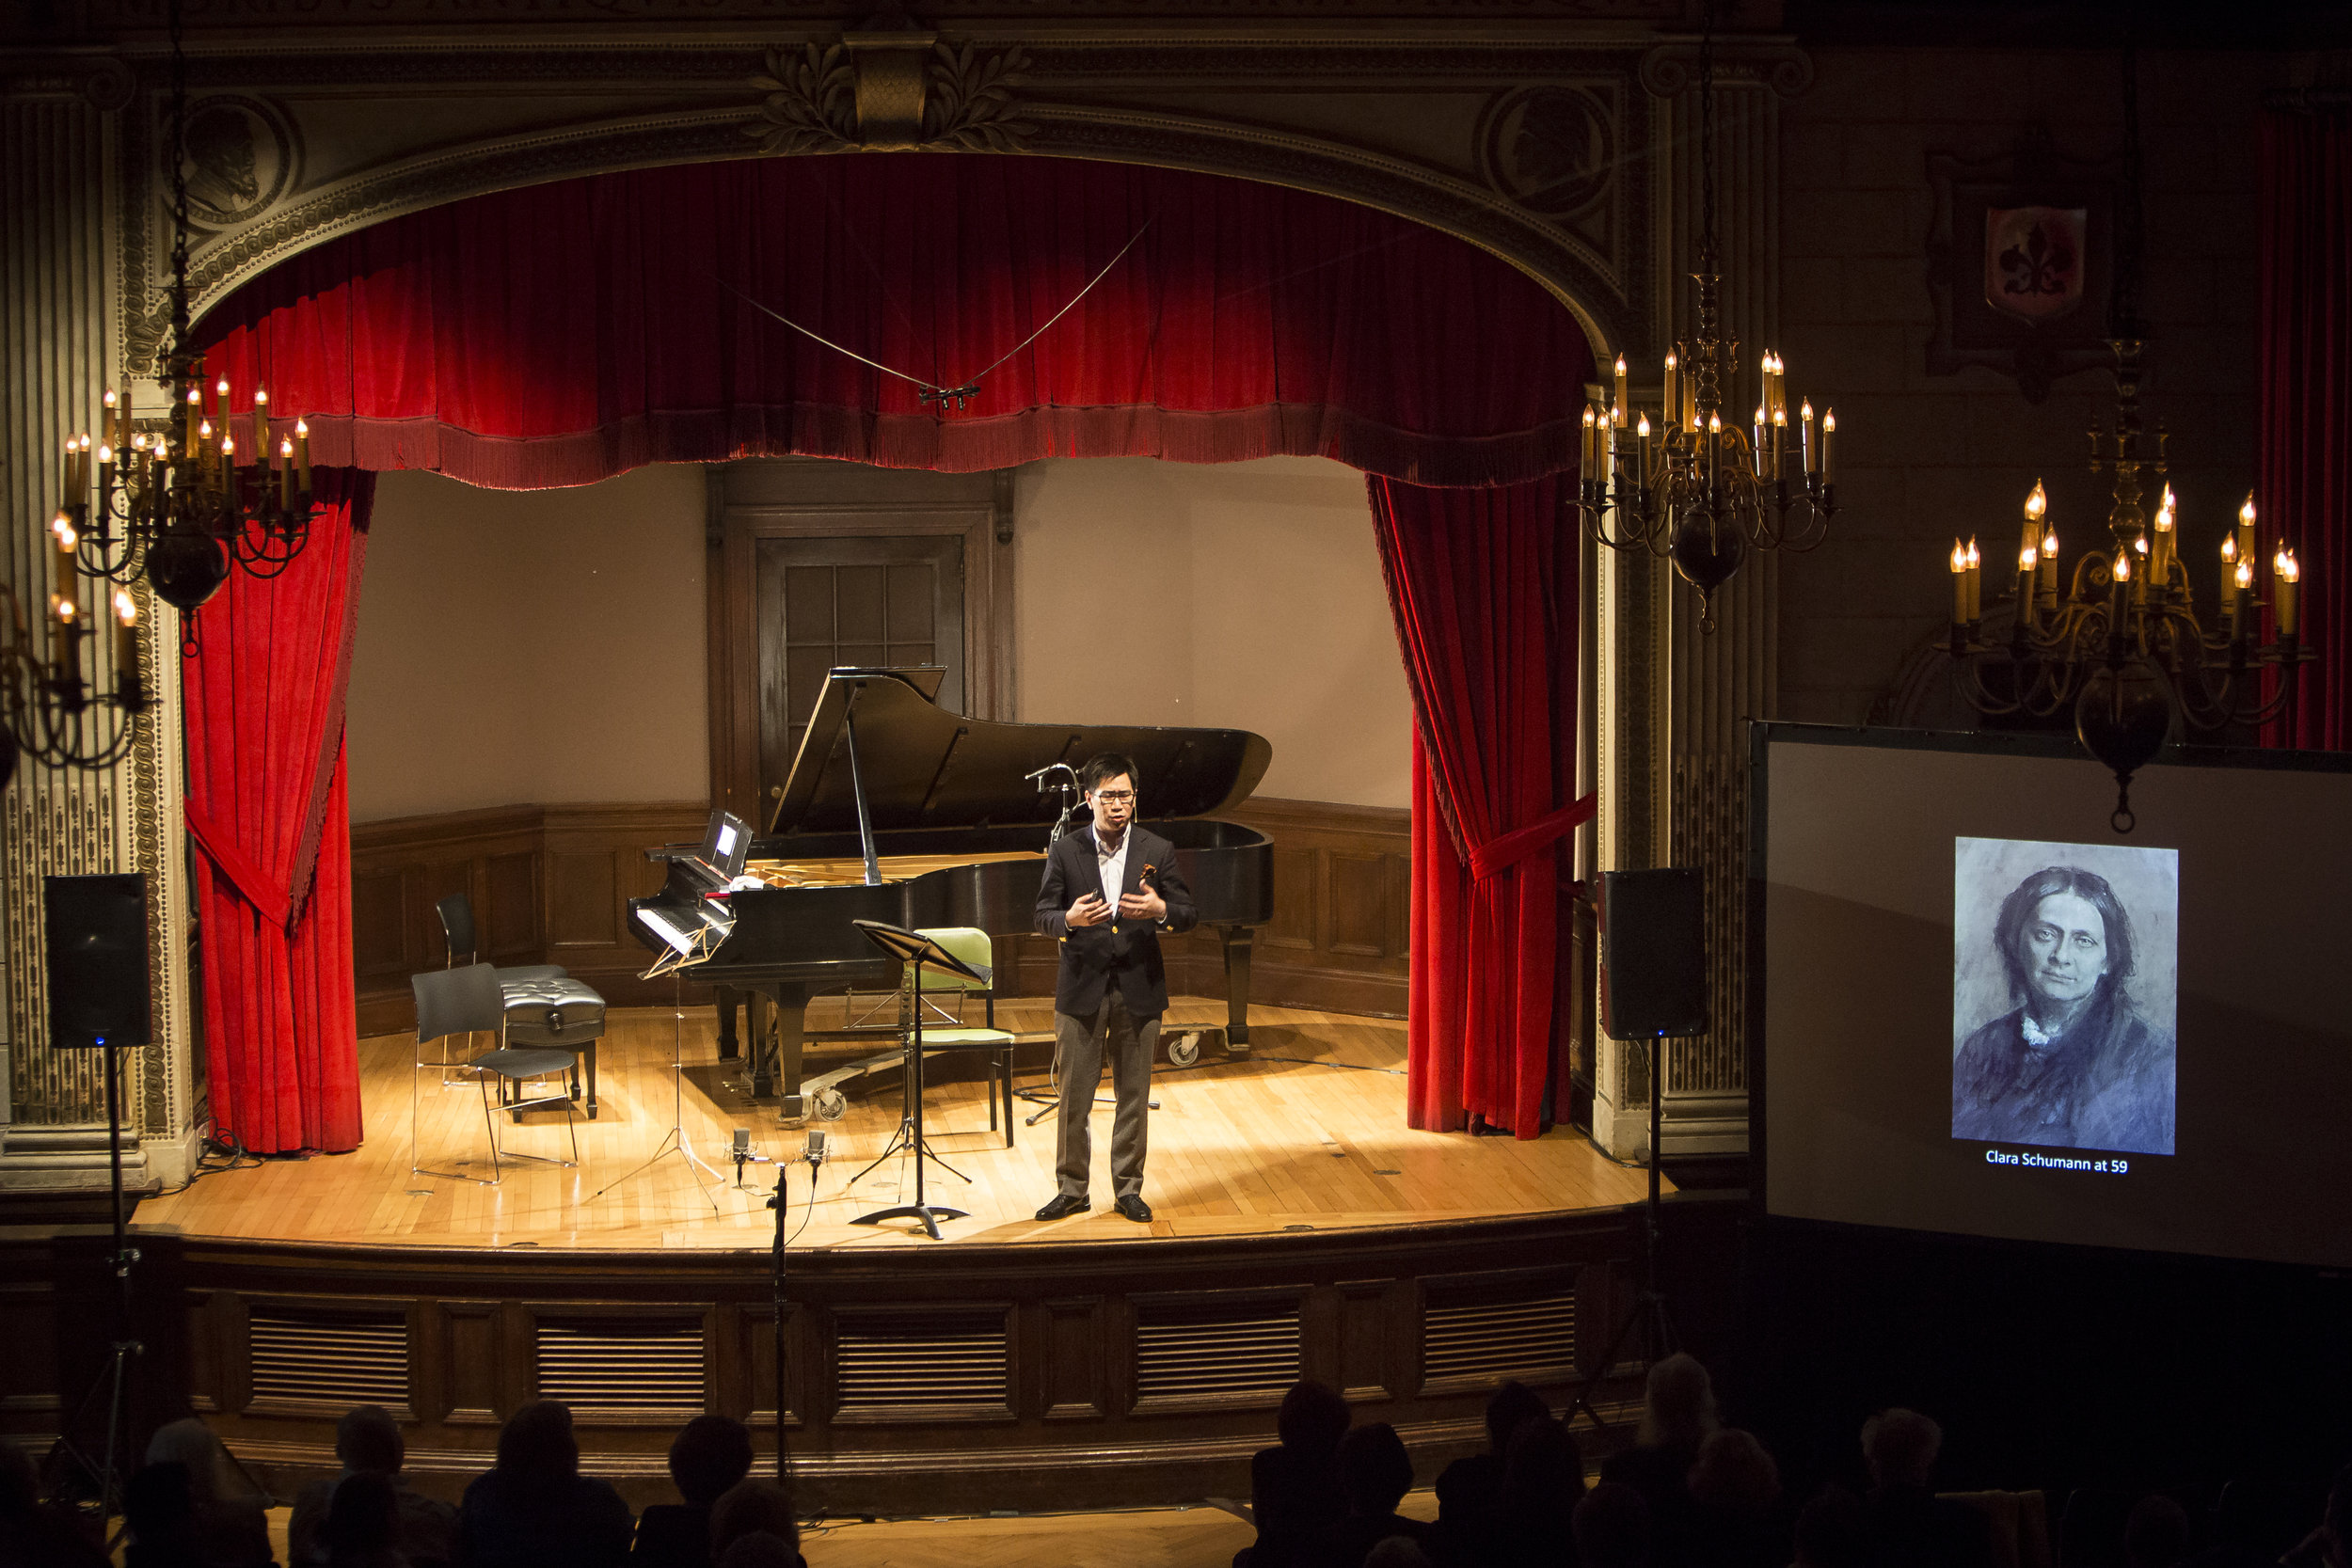 CLARA SCHUMANN: ARTIST AND MUSE - april 19, 2017. italian academyStephanie Chase, violinSophie Shao, celloTodd Crow, pianoIllustrated talk by Stephen JohnsonRobert Schumann - Five Pieces in Folk Style for cello and piano, Op. 102Johannes Brahms - Sonata in G major for violin and piano, Op. 78Clara Schumann - Piano Trio in G minor, Op. 17